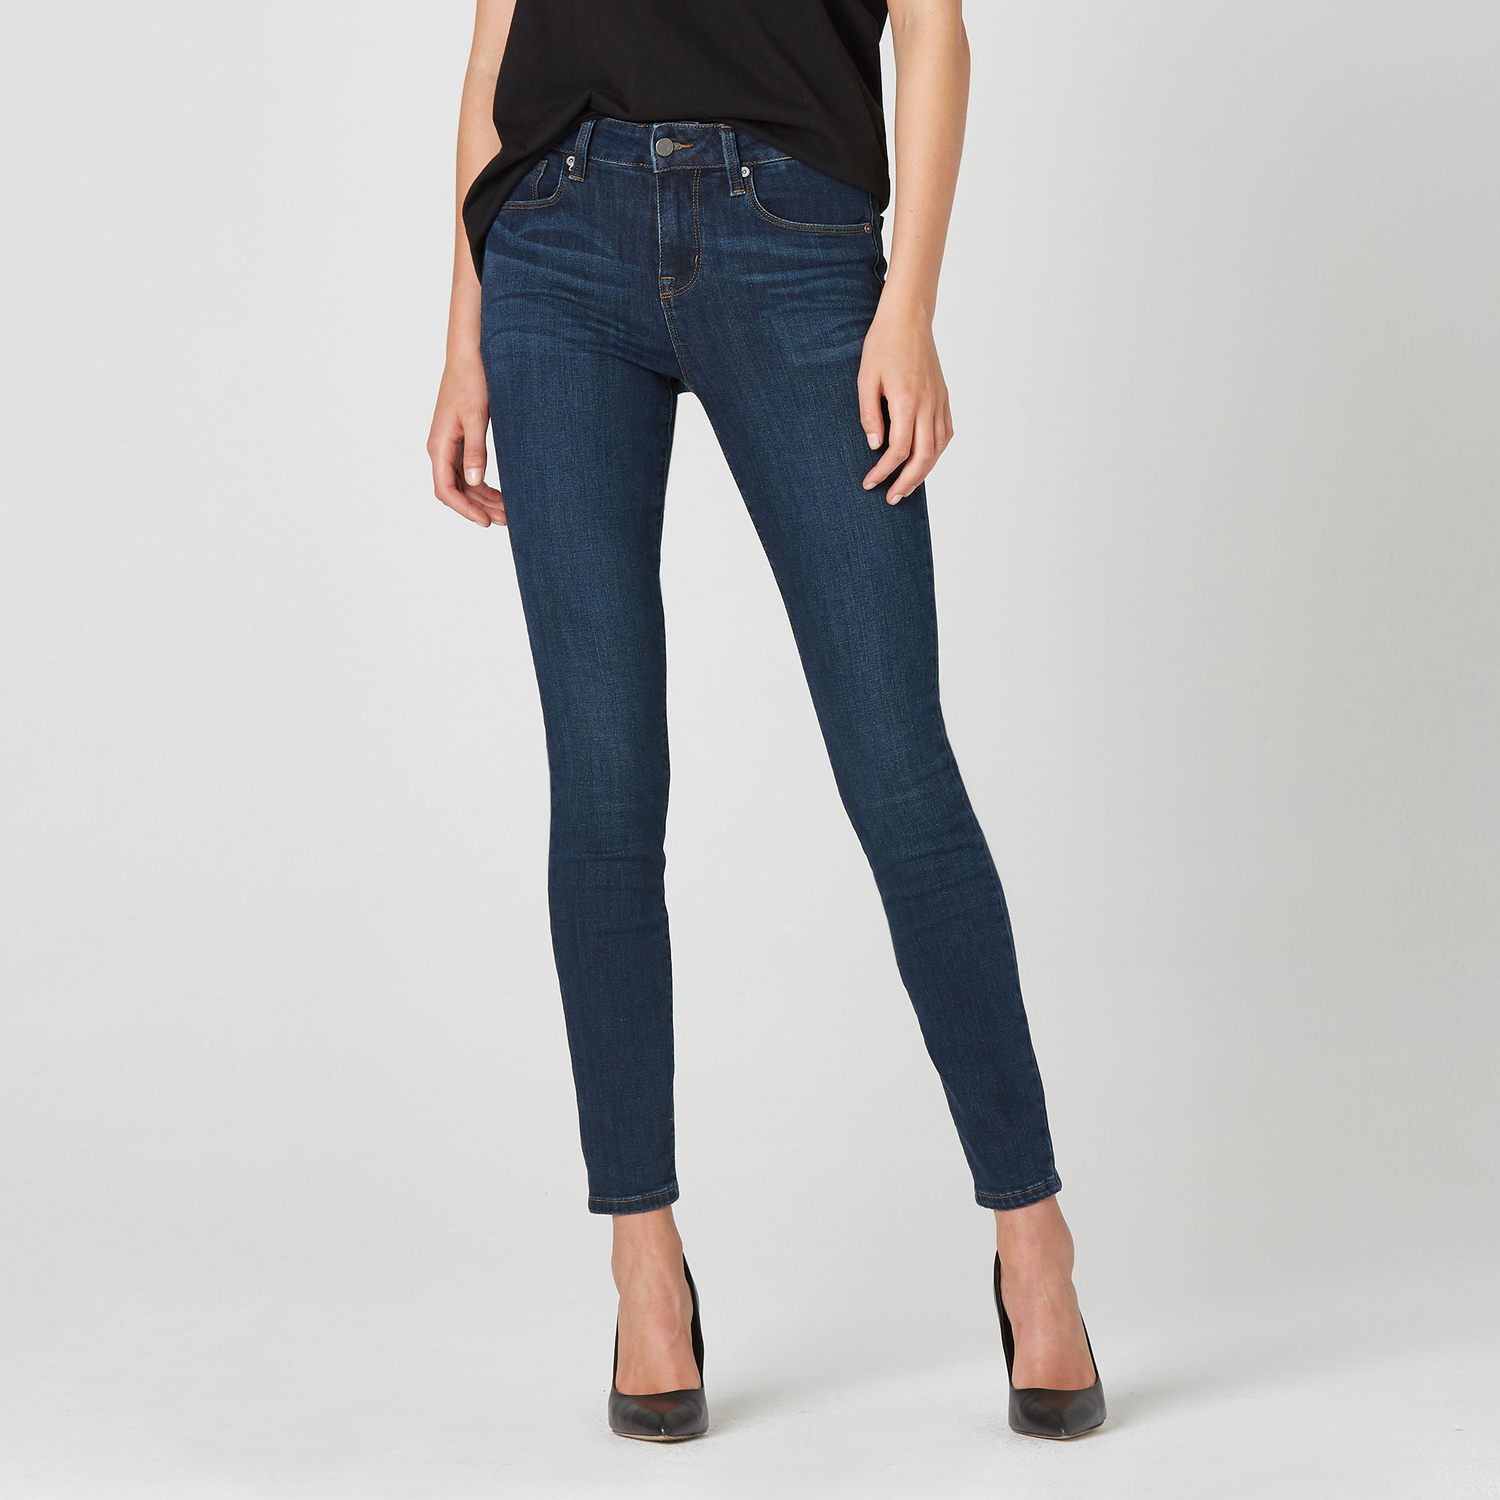 8c7989ec25e Womens High Rise Skinny Jeans In Dark Vintage $95 | DSTLD